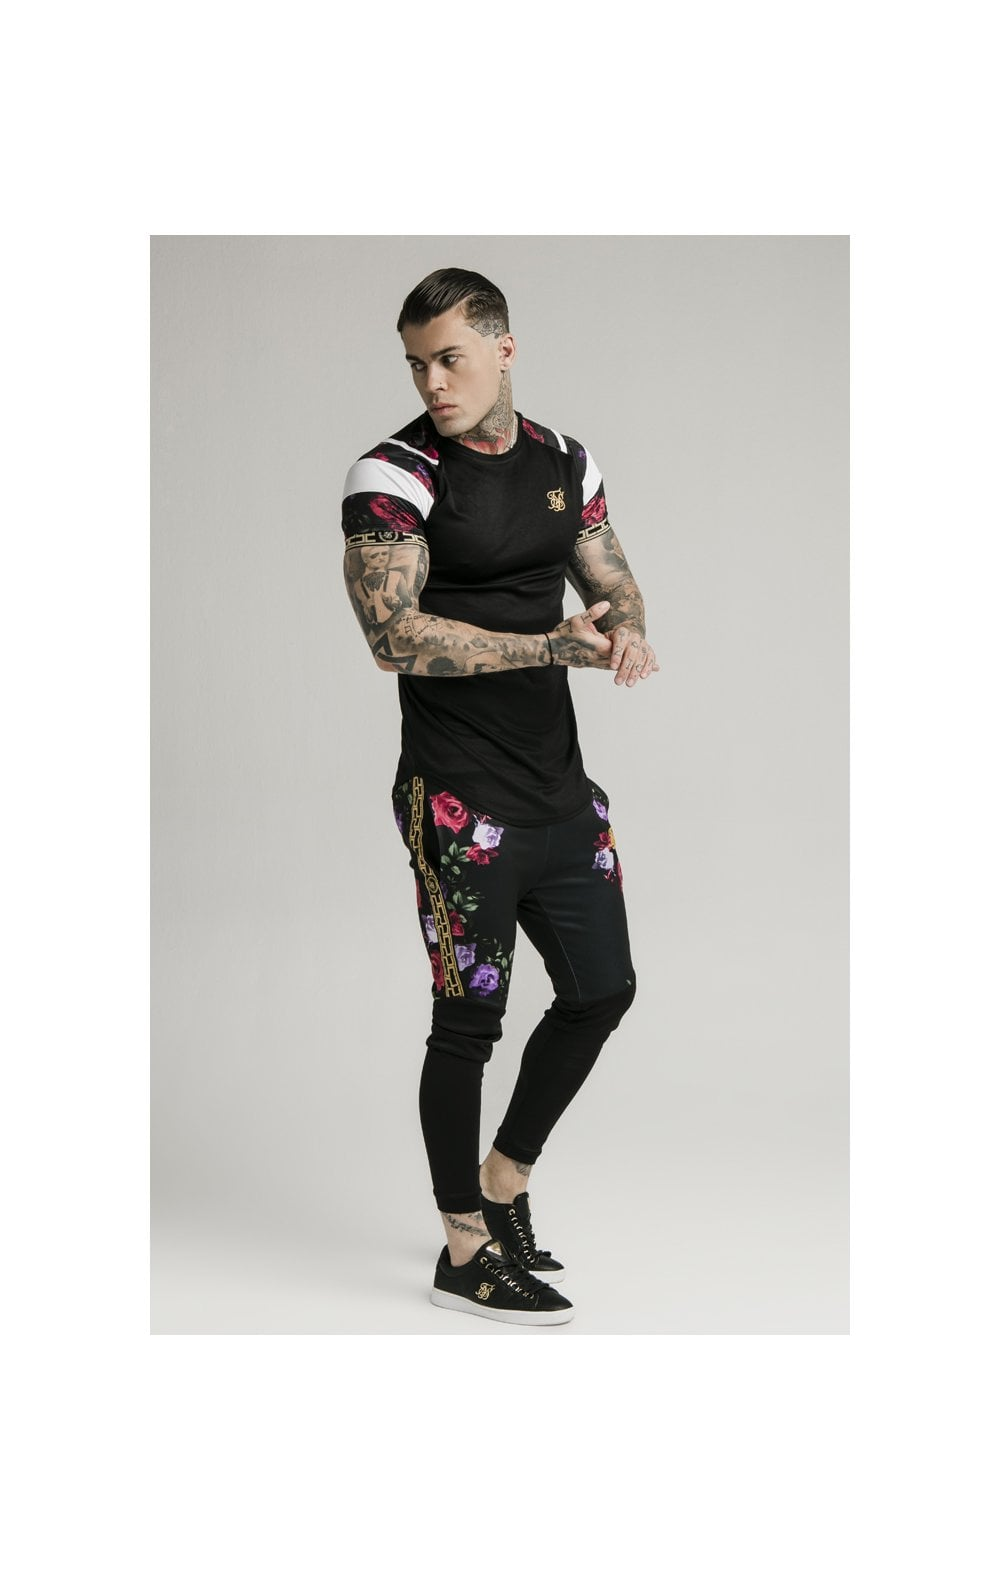 Load image into Gallery viewer, SikSilk Cuffed Panel Athlete Track Pants - Black & Oil Paint (2)